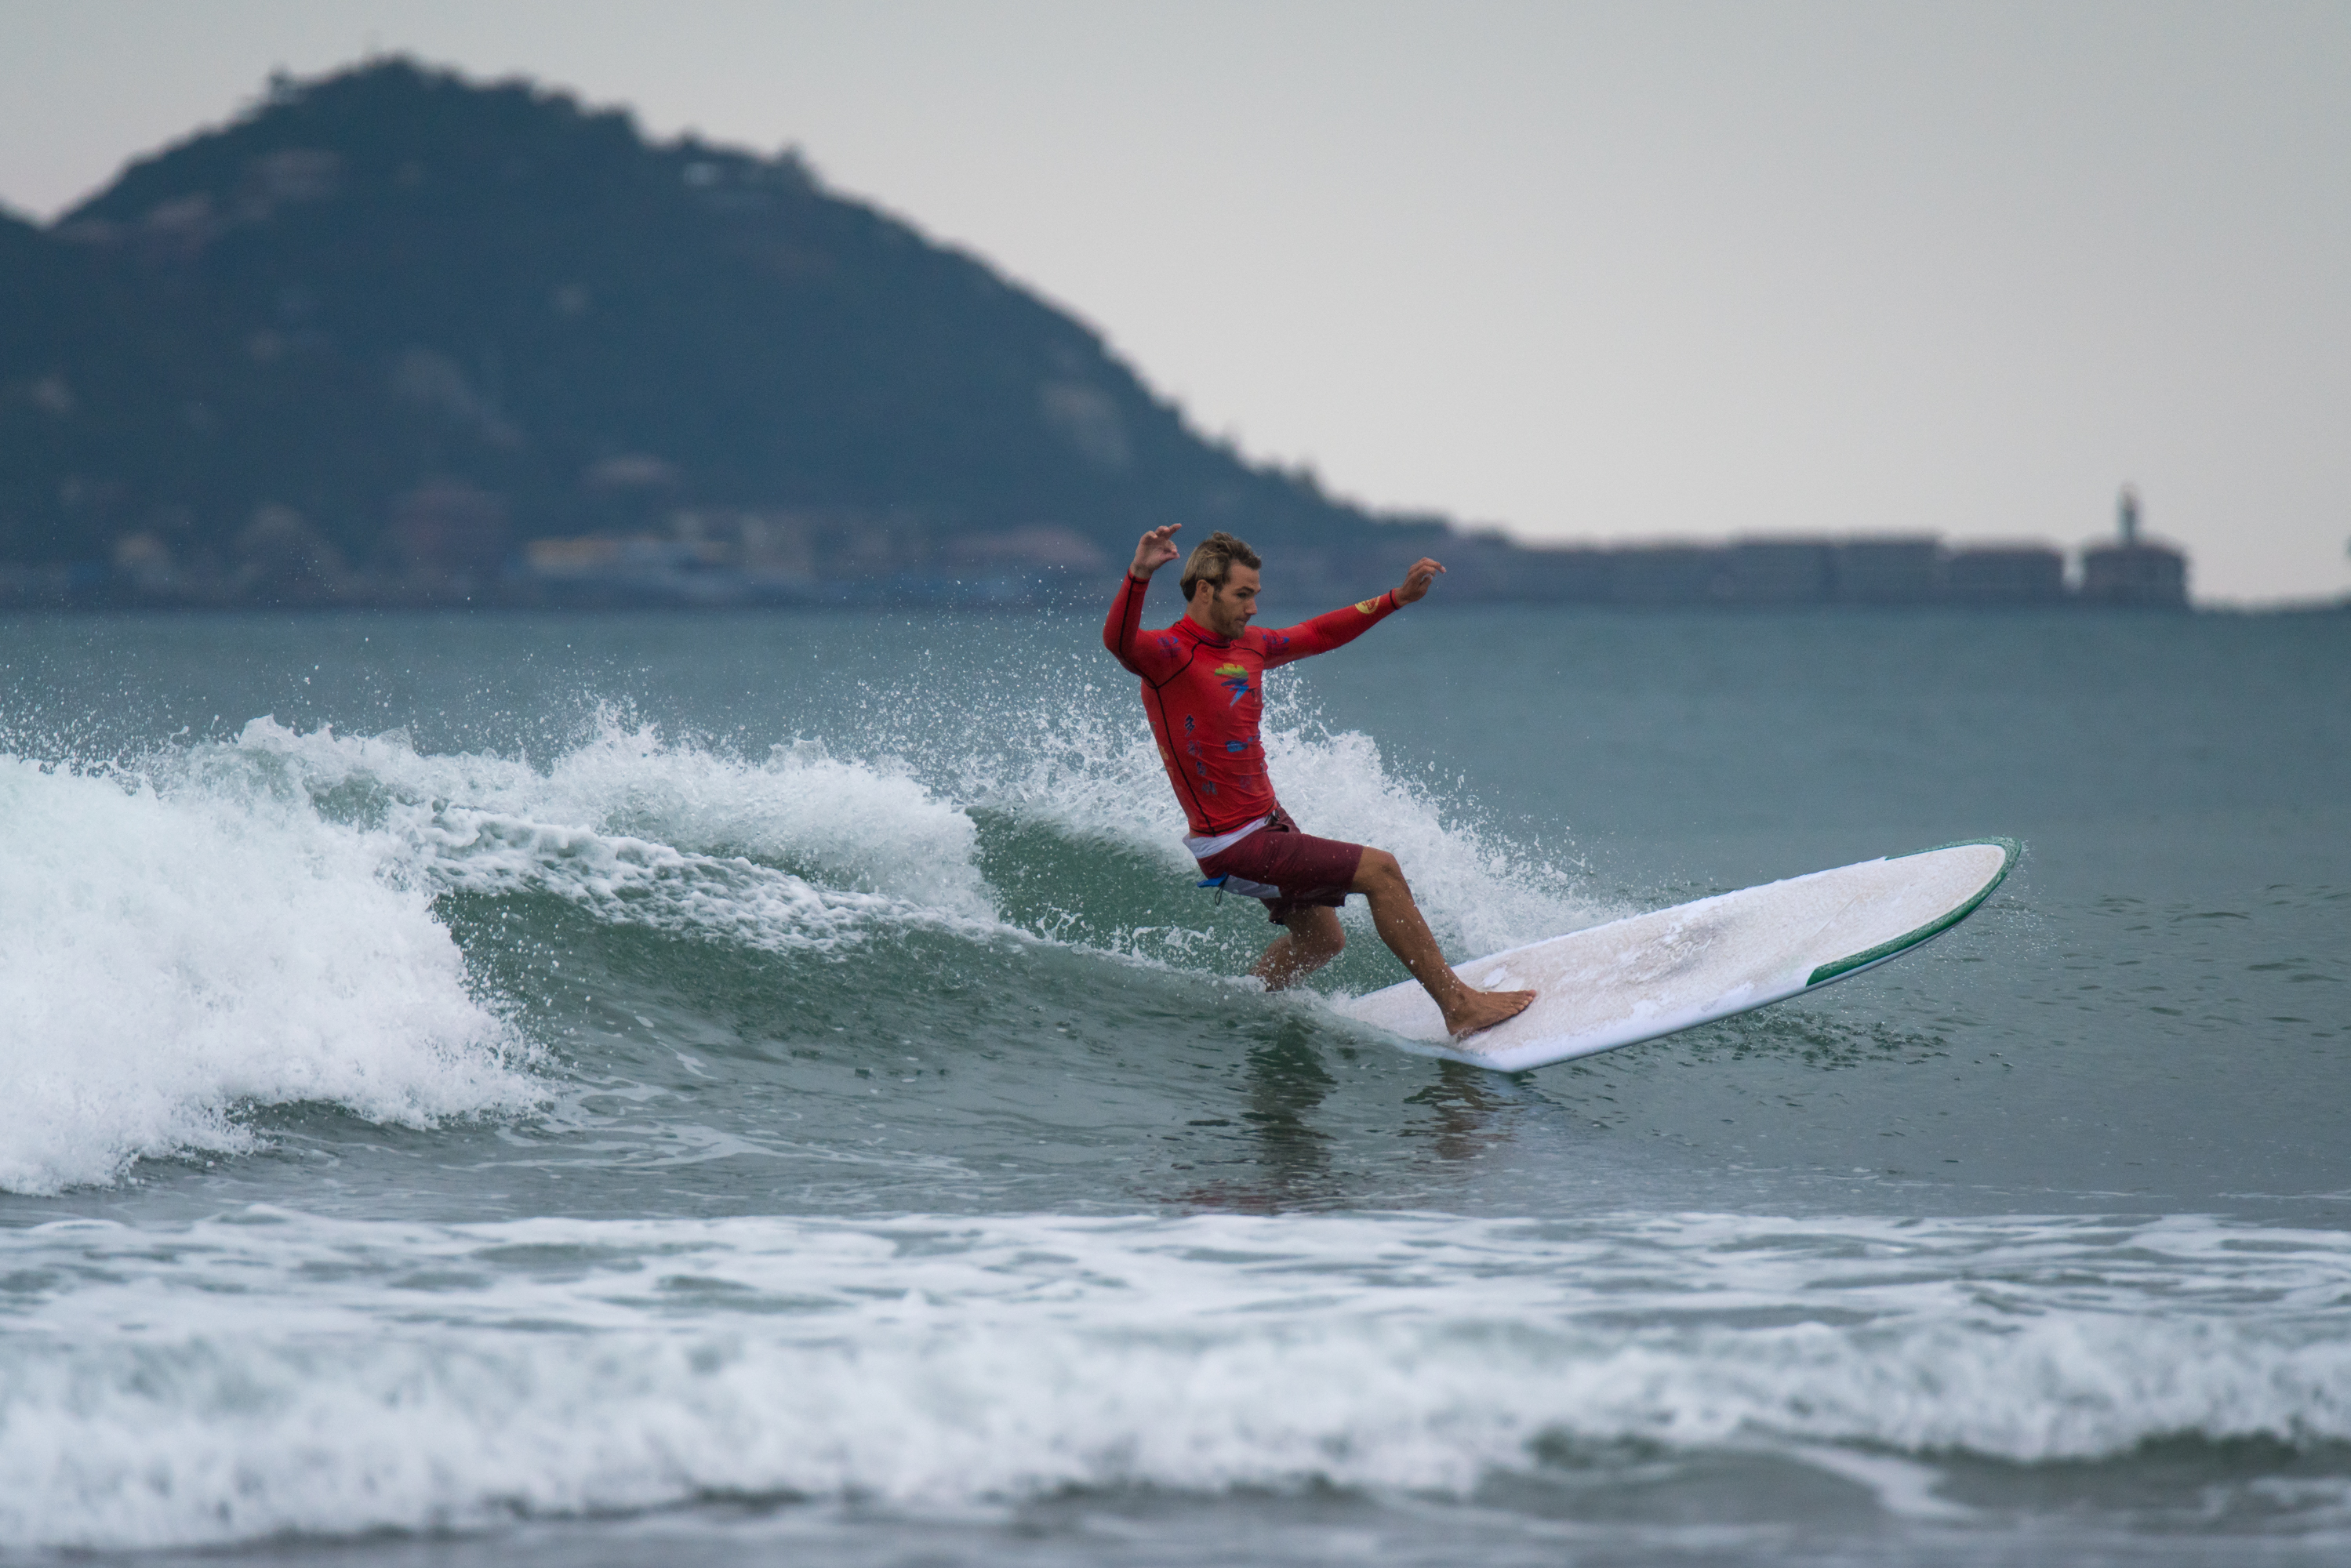 World s Best Longboarders Impress on Opening Day of Competition at ... 54f6625e7f